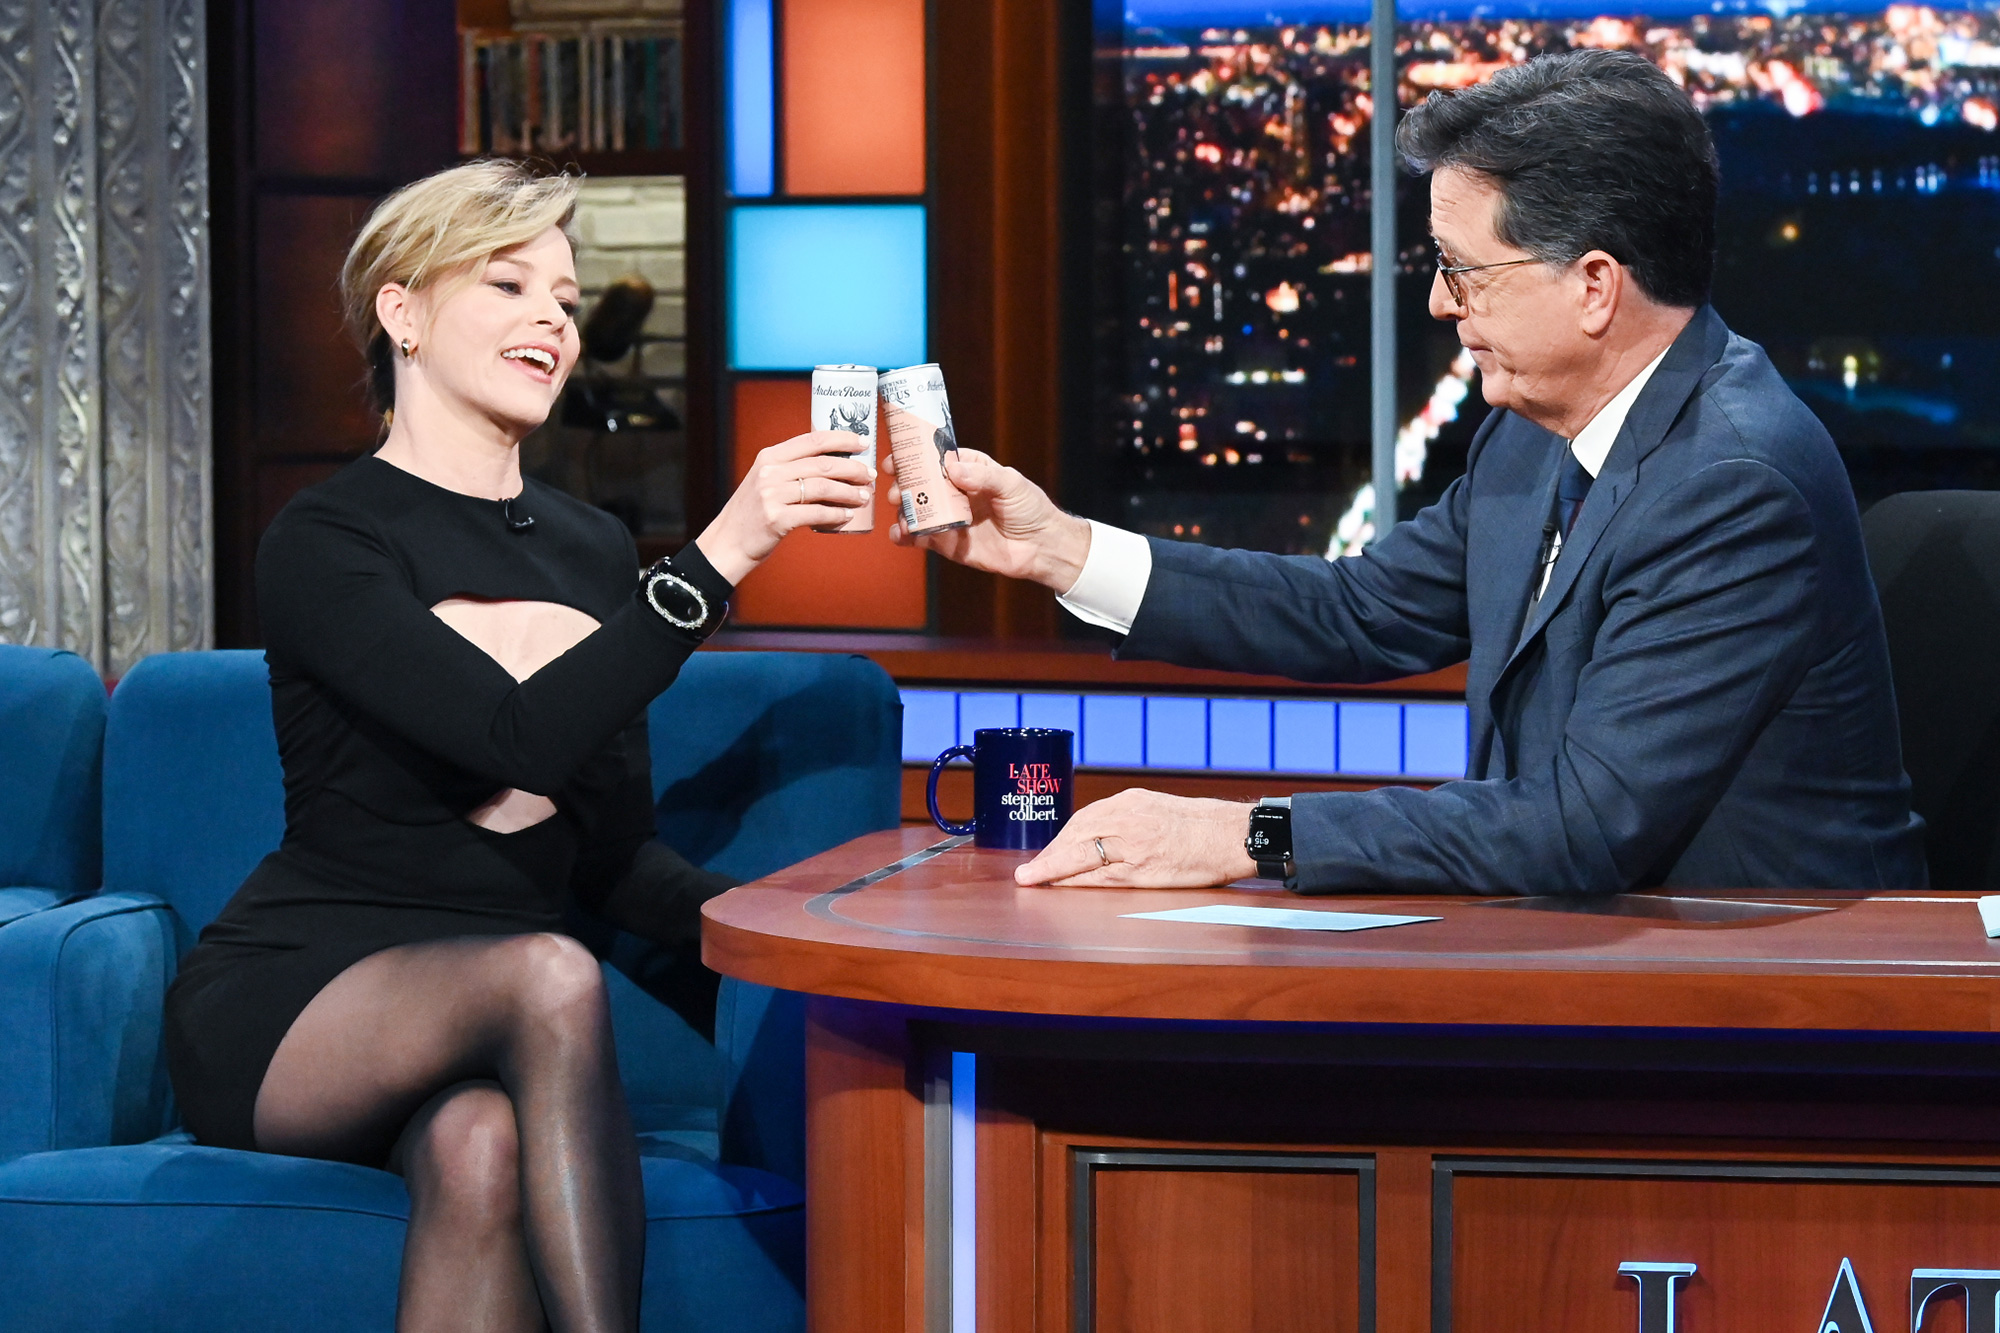 The Late Show with Stephen Colbert and guest Elizabeth Banks during Wednesday's October 27, 2021 show. Photo: Scott Kowalchyk/CBS ©2021 CBS Broadcasting Inc. All Rights Reserved.